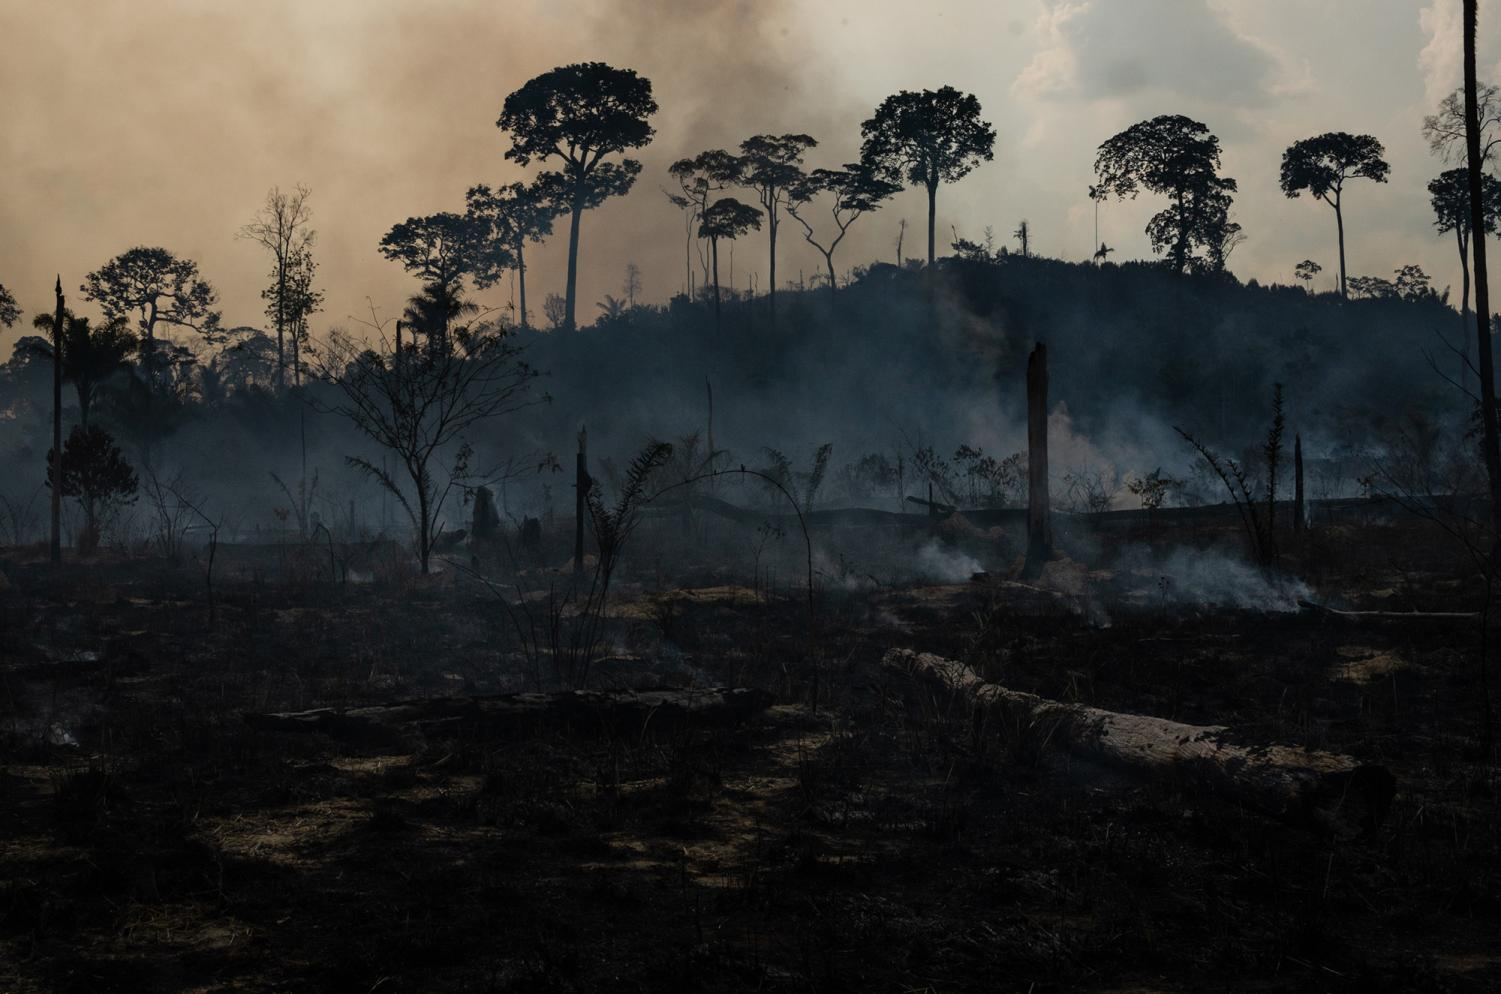 Members of the IBAMA forest fire brigade (named Prevfogo) fight burning in the Amazon area of rural settlement PDS Nova Fronteira, in the city of Novo Progresso, Para state, northern Brazil, onTuesday, Sept. 3, 2019. (Gustavo Basso/NurPhoto/Zuma Press/TNS)  HFA WEB LN NO MAGAZINE SALES * France Rights OUT *